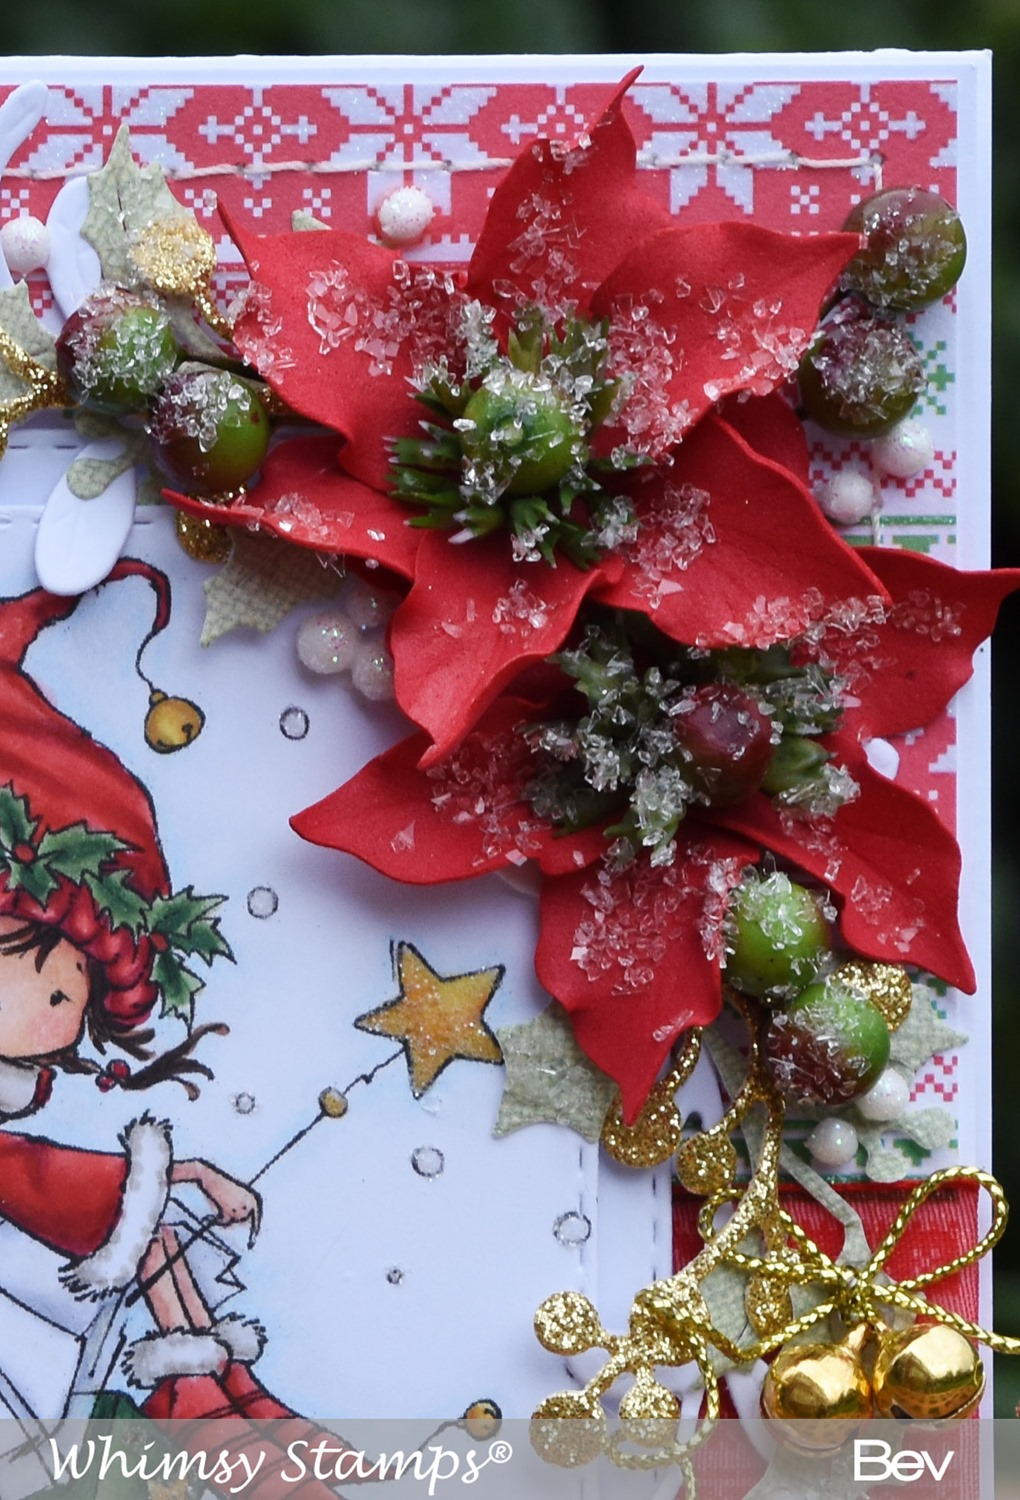 [bev-rochester-whimsy-stamps-christmas-sprite1%5B2%5D]